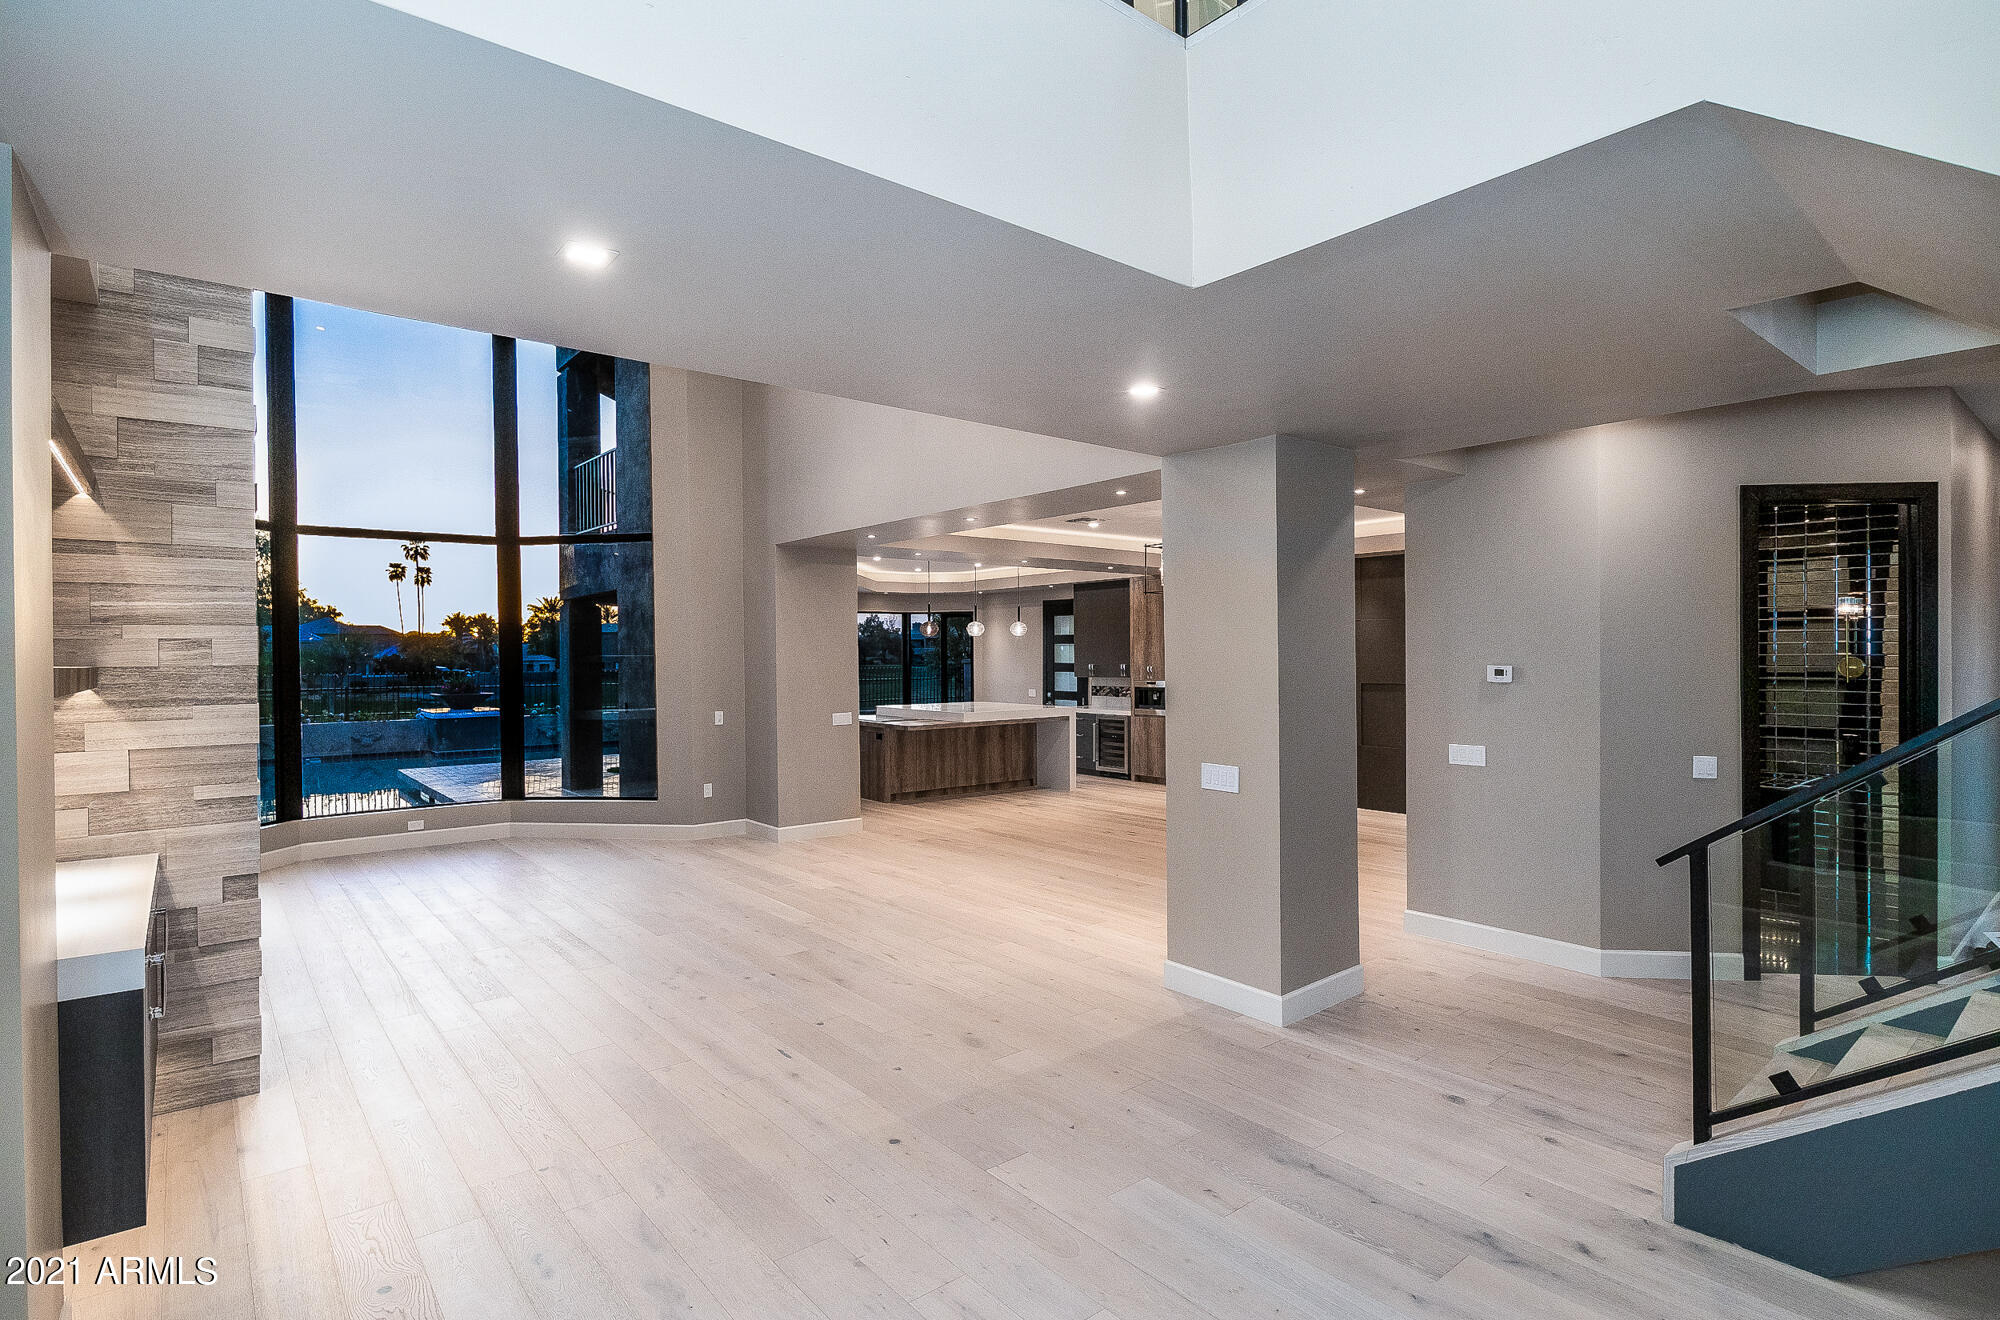 7878 GAINEY RANCH Road, Scottsdale, Arizona 85258, 4 Bedrooms Bedrooms, ,4.5 BathroomsBathrooms,Residential,For Sale,GAINEY RANCH,6217010